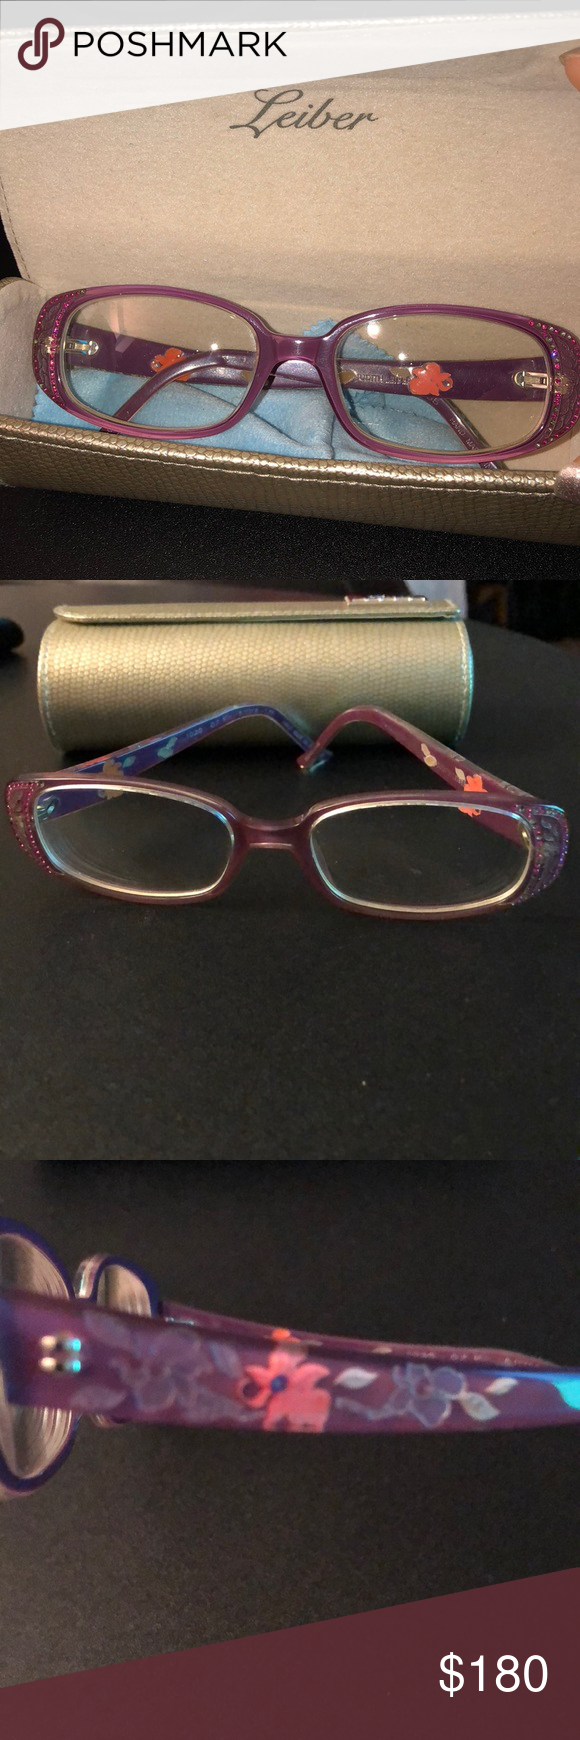 5203965c3c Beautiful Judith Leiber glasses! Put your prescription in them! There s  already one in there